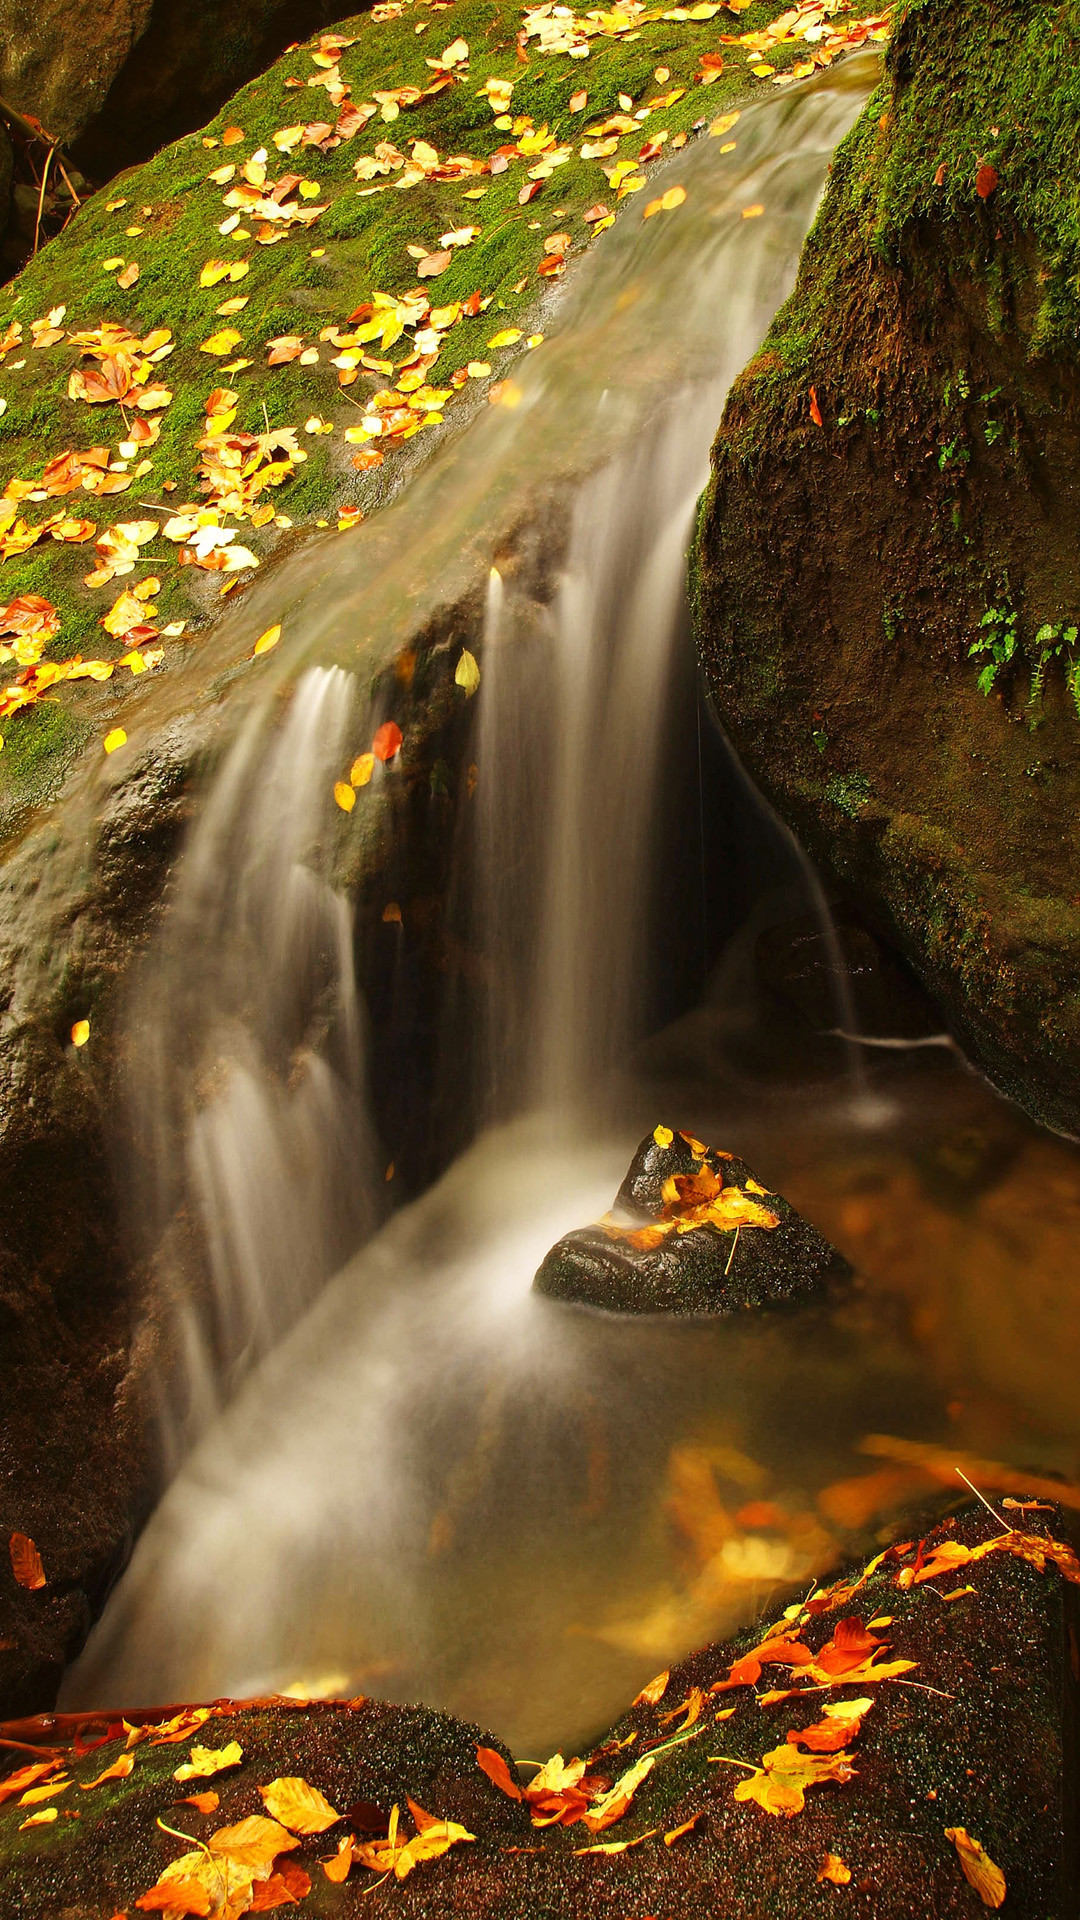 … Wallpaper Weekends: Fall has Dell – Autumn Wallpapers for the iPhone